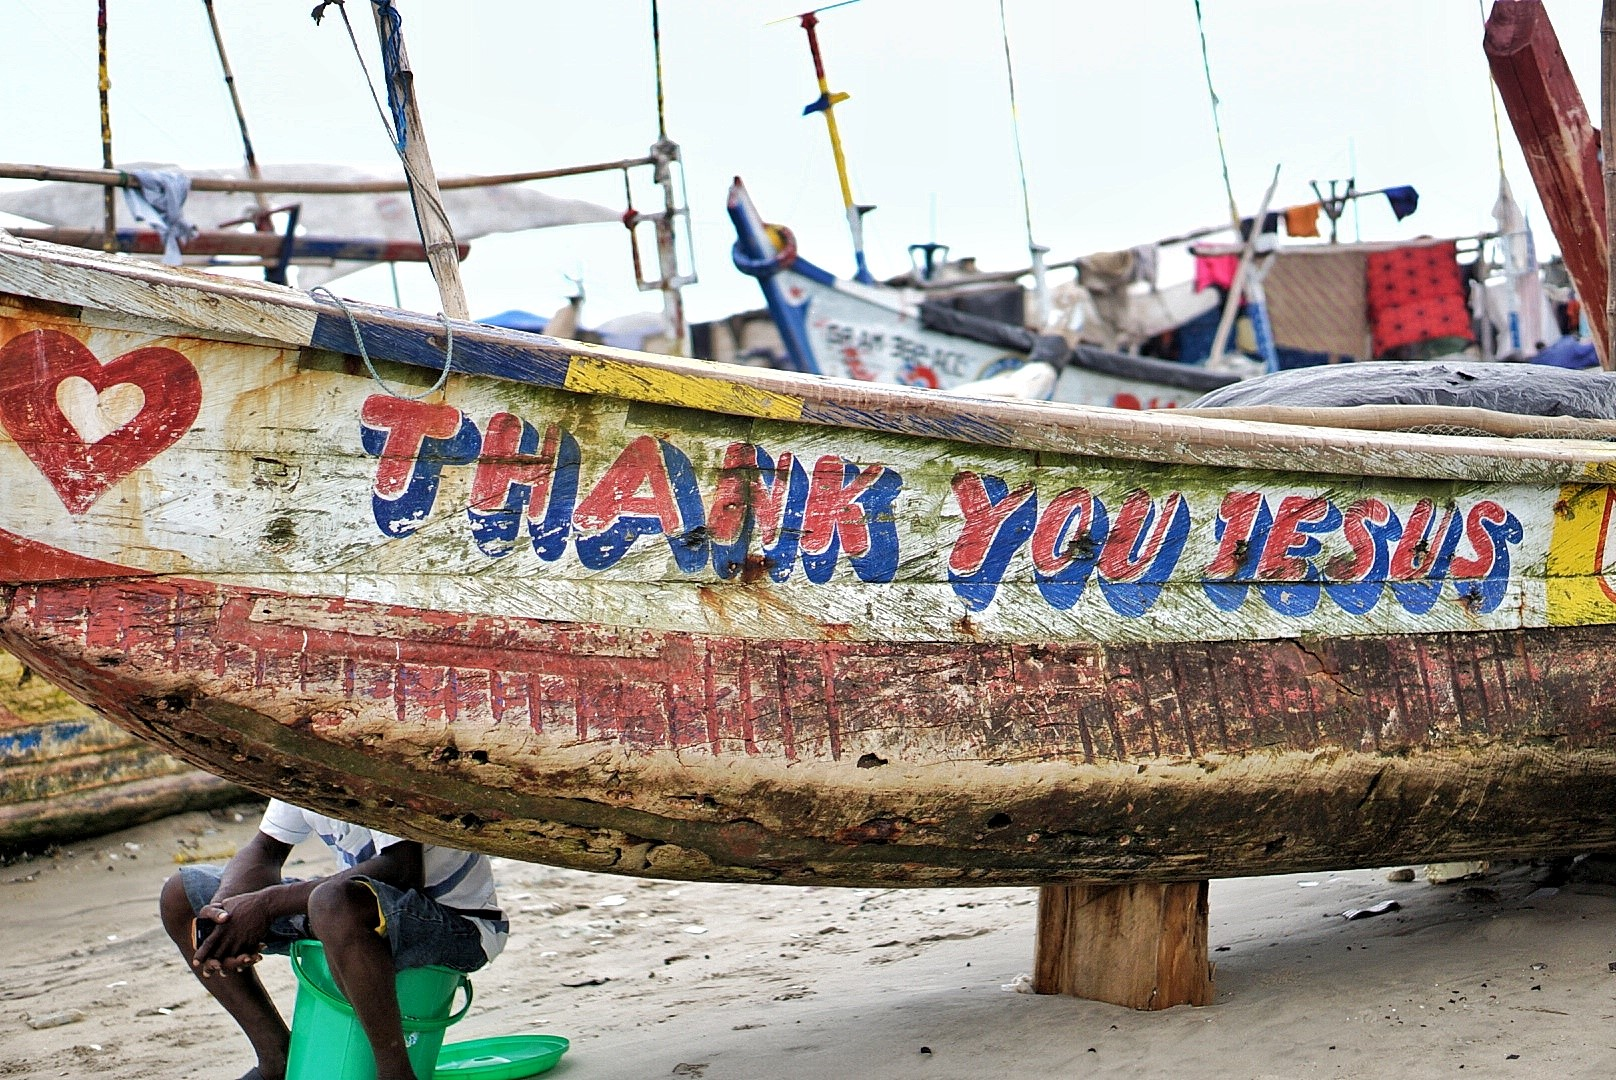 Boat at a fishing village in jamestown Accra